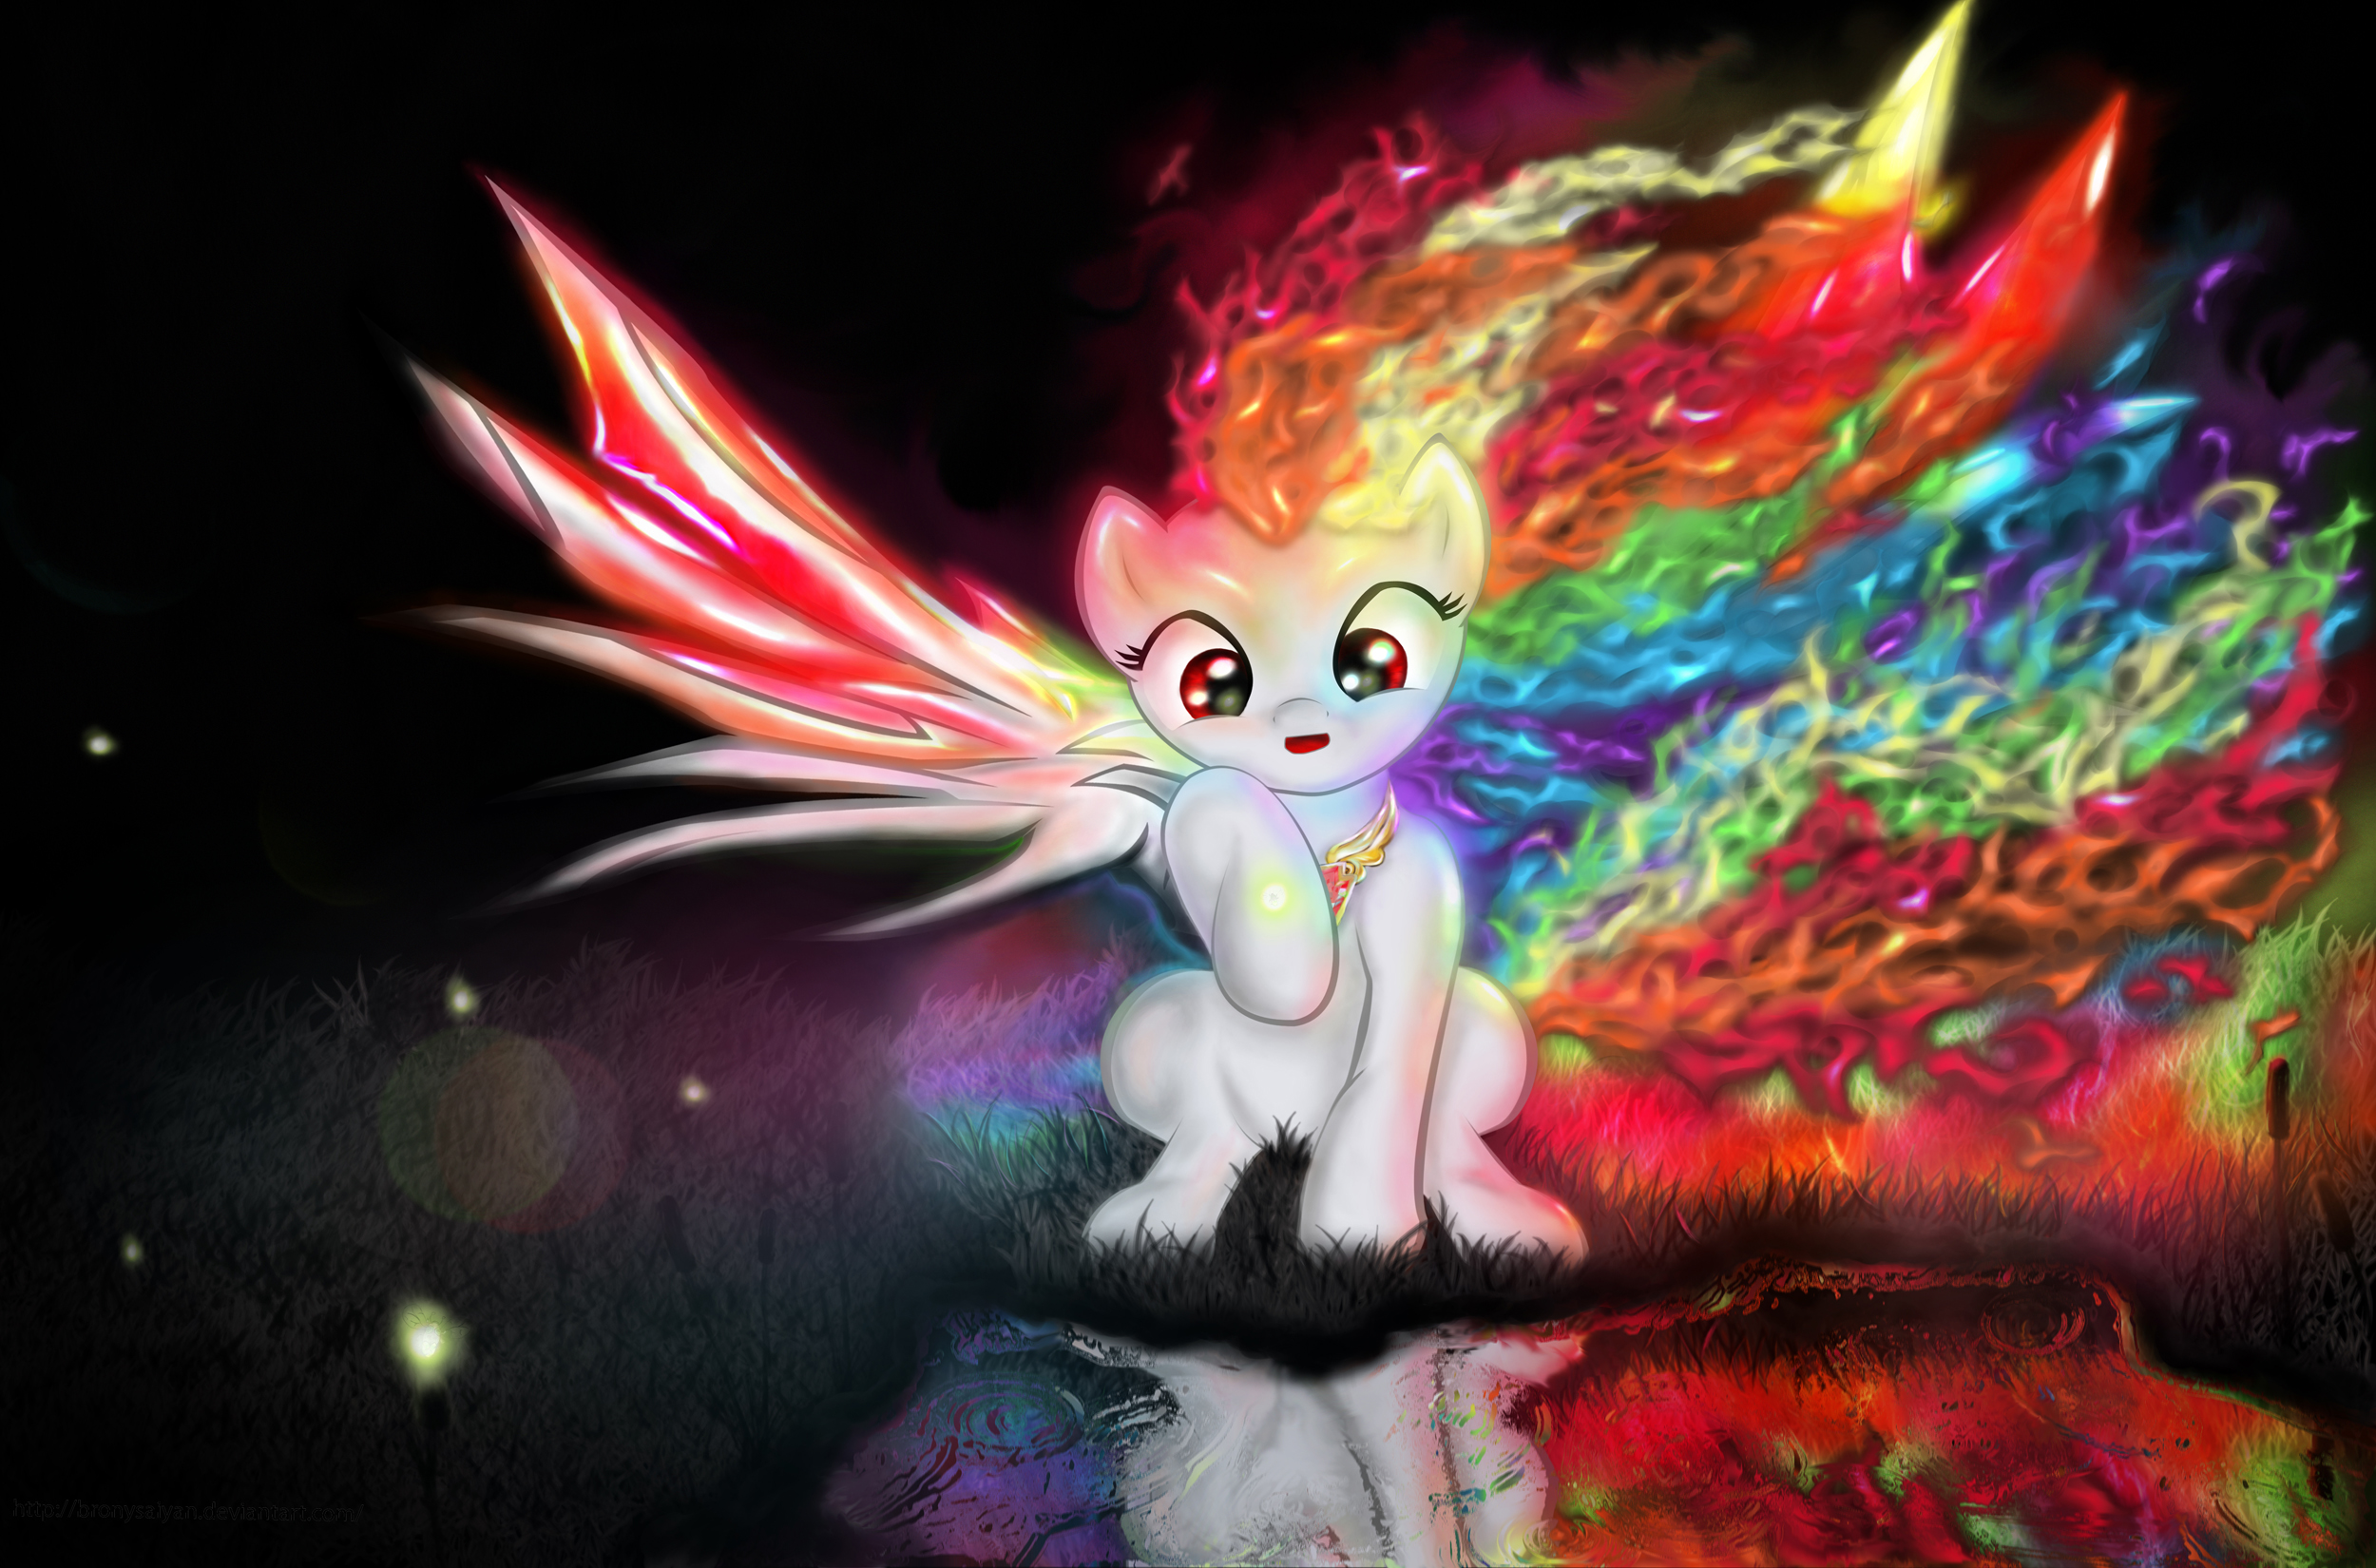 Burning Twilight Sparkle Vs Super Rainbow Dash